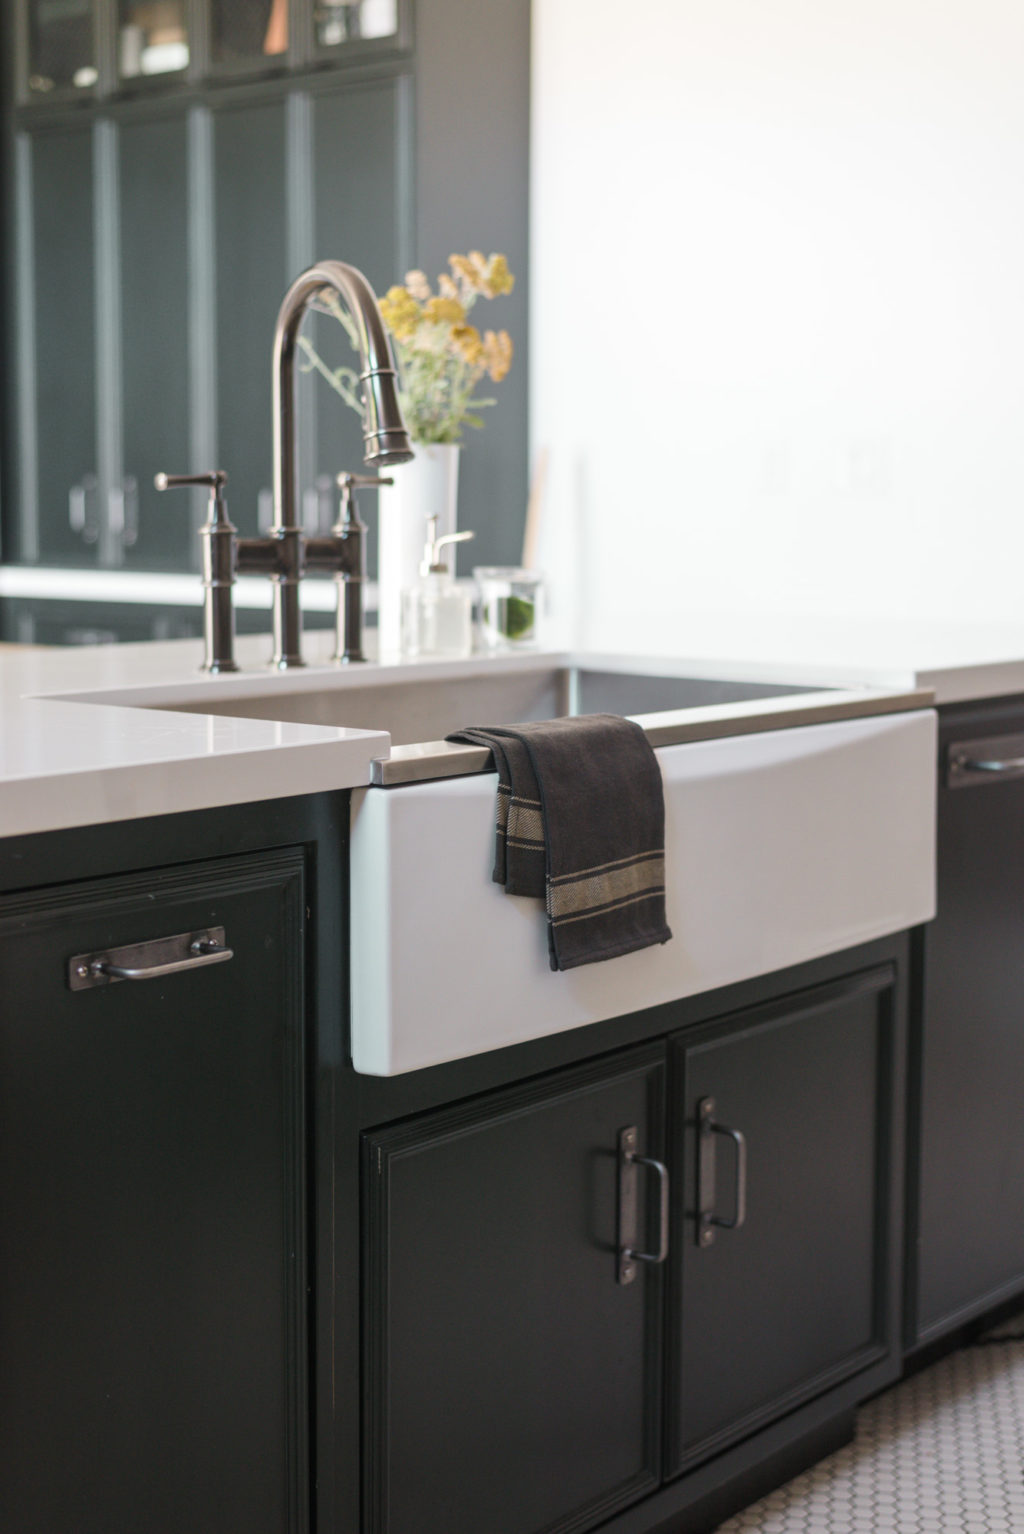 The Kitchen Sink That You Can Change On A Whim • Vintage Revivals